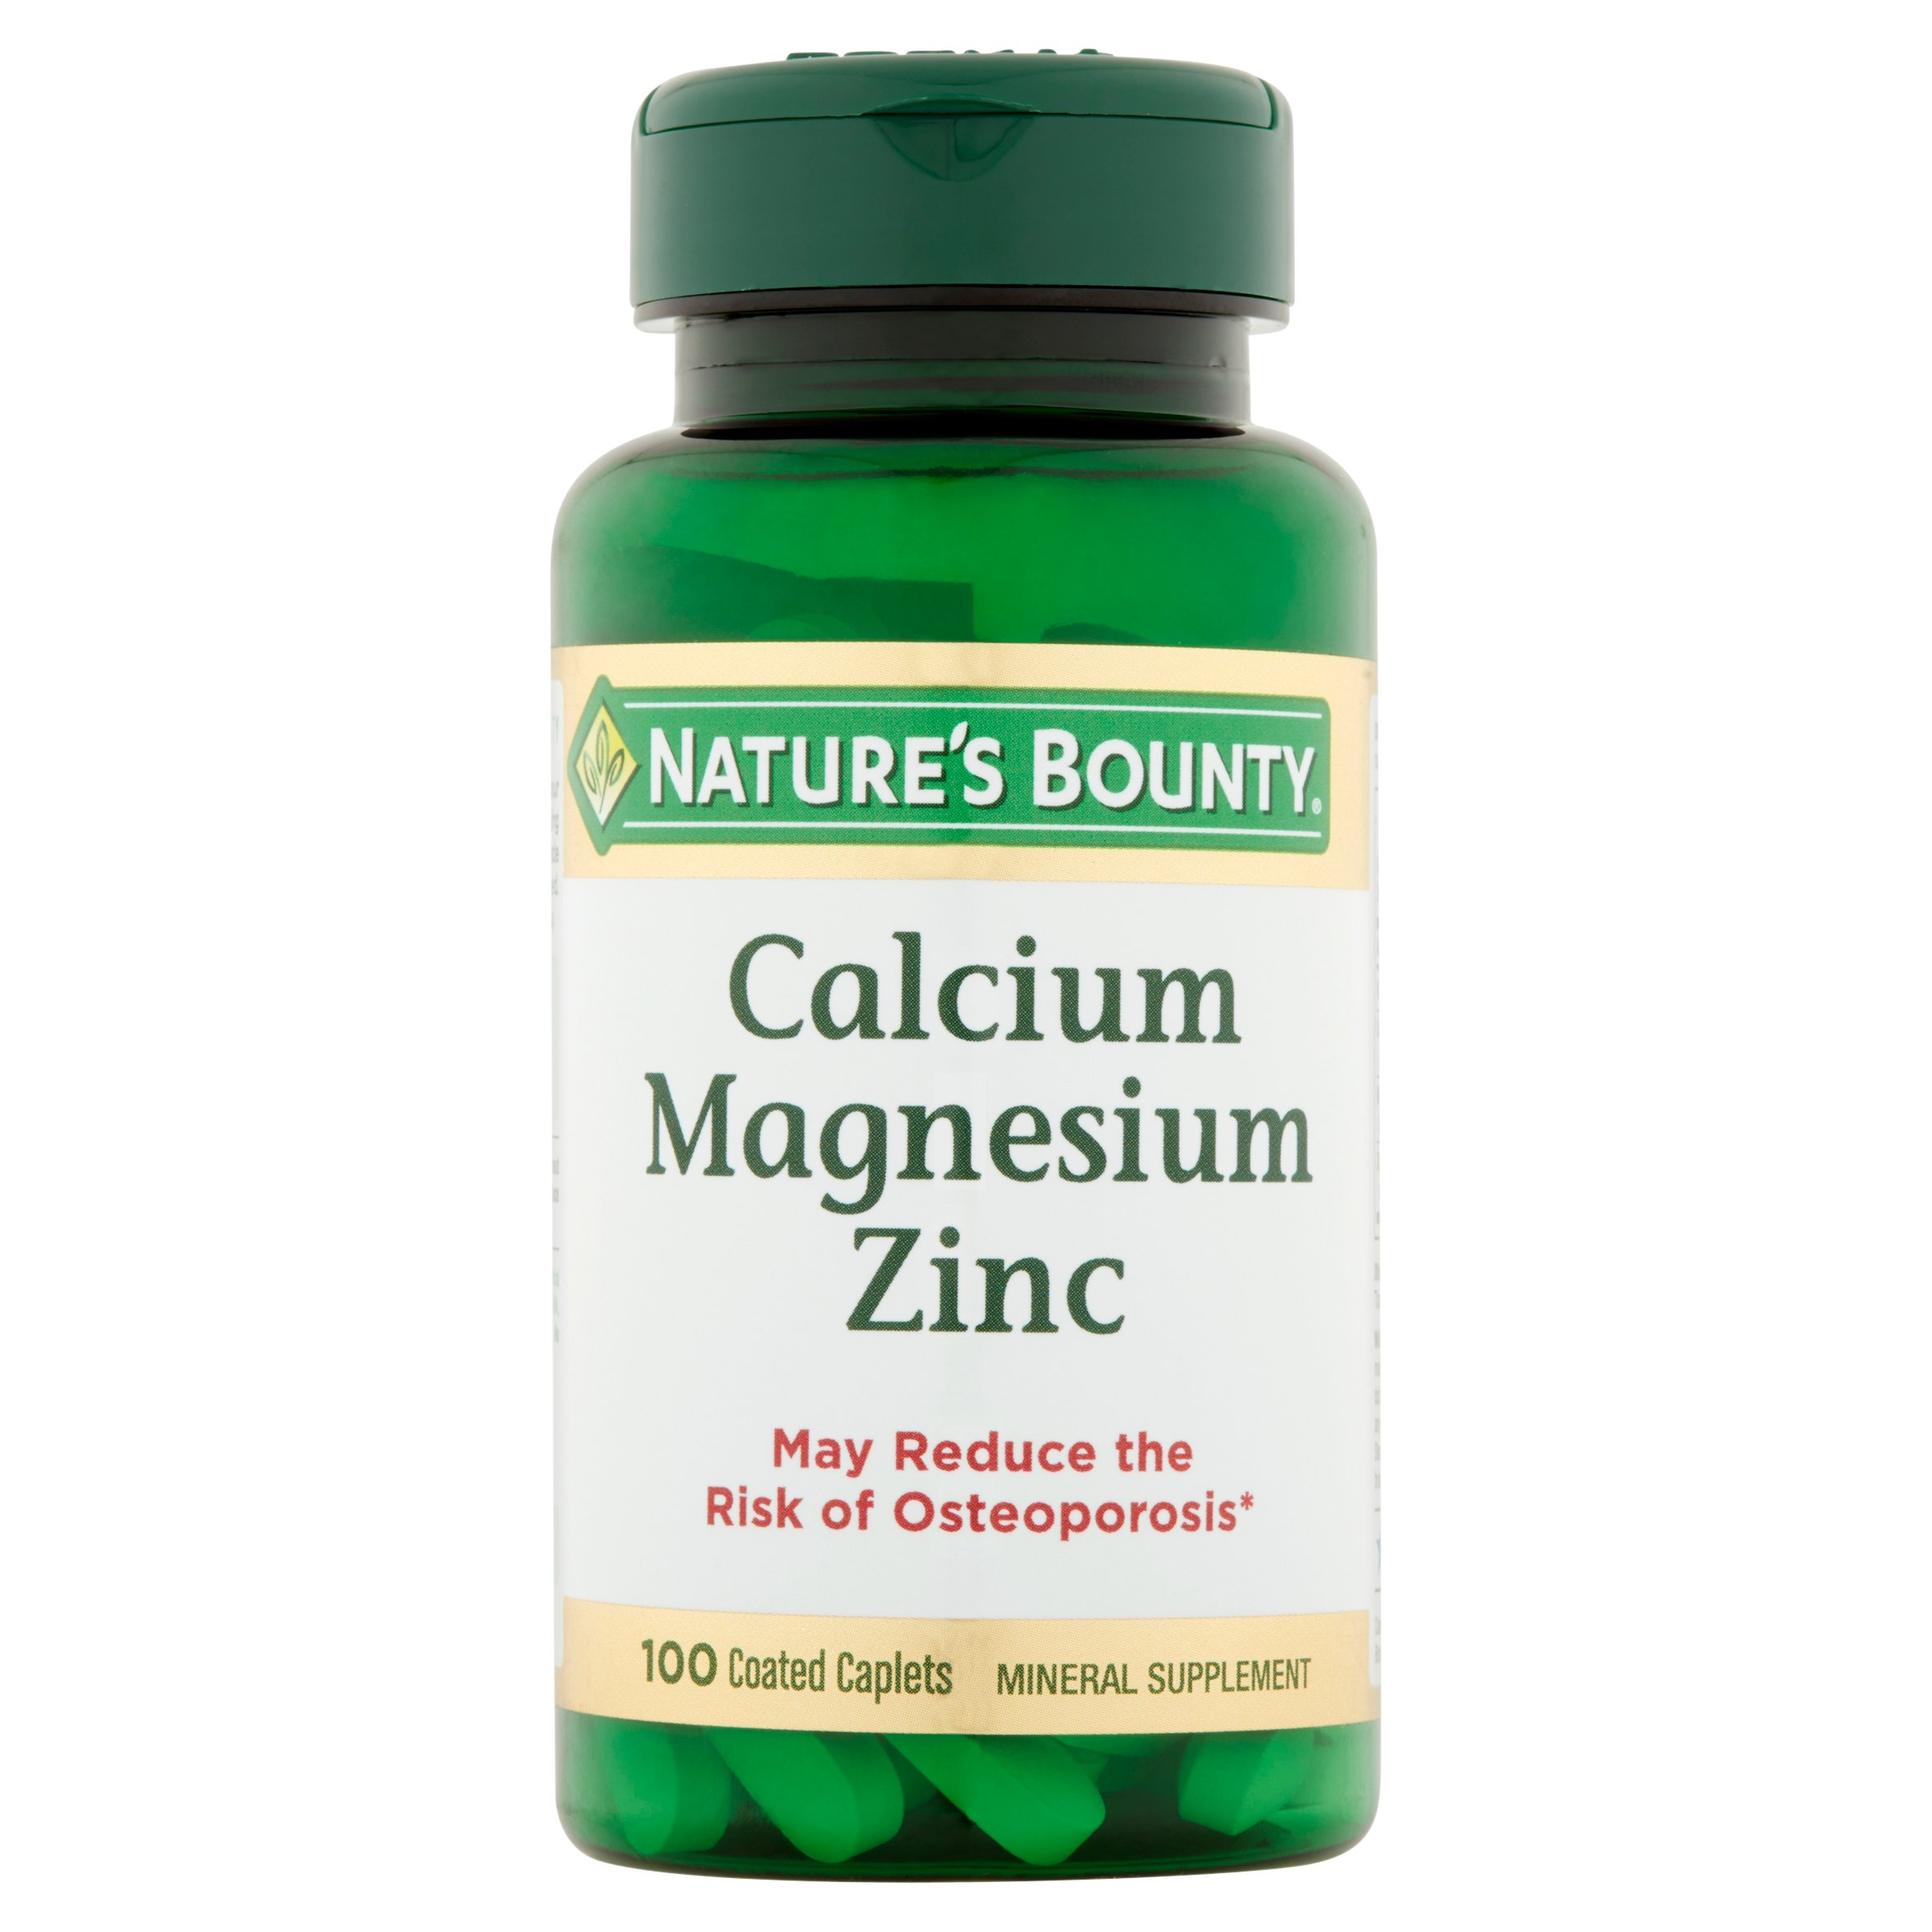 (2 pack) Nature's Bounty Calcium-Magnesiuim-Zinc, Coated Caplets, 100 Ct